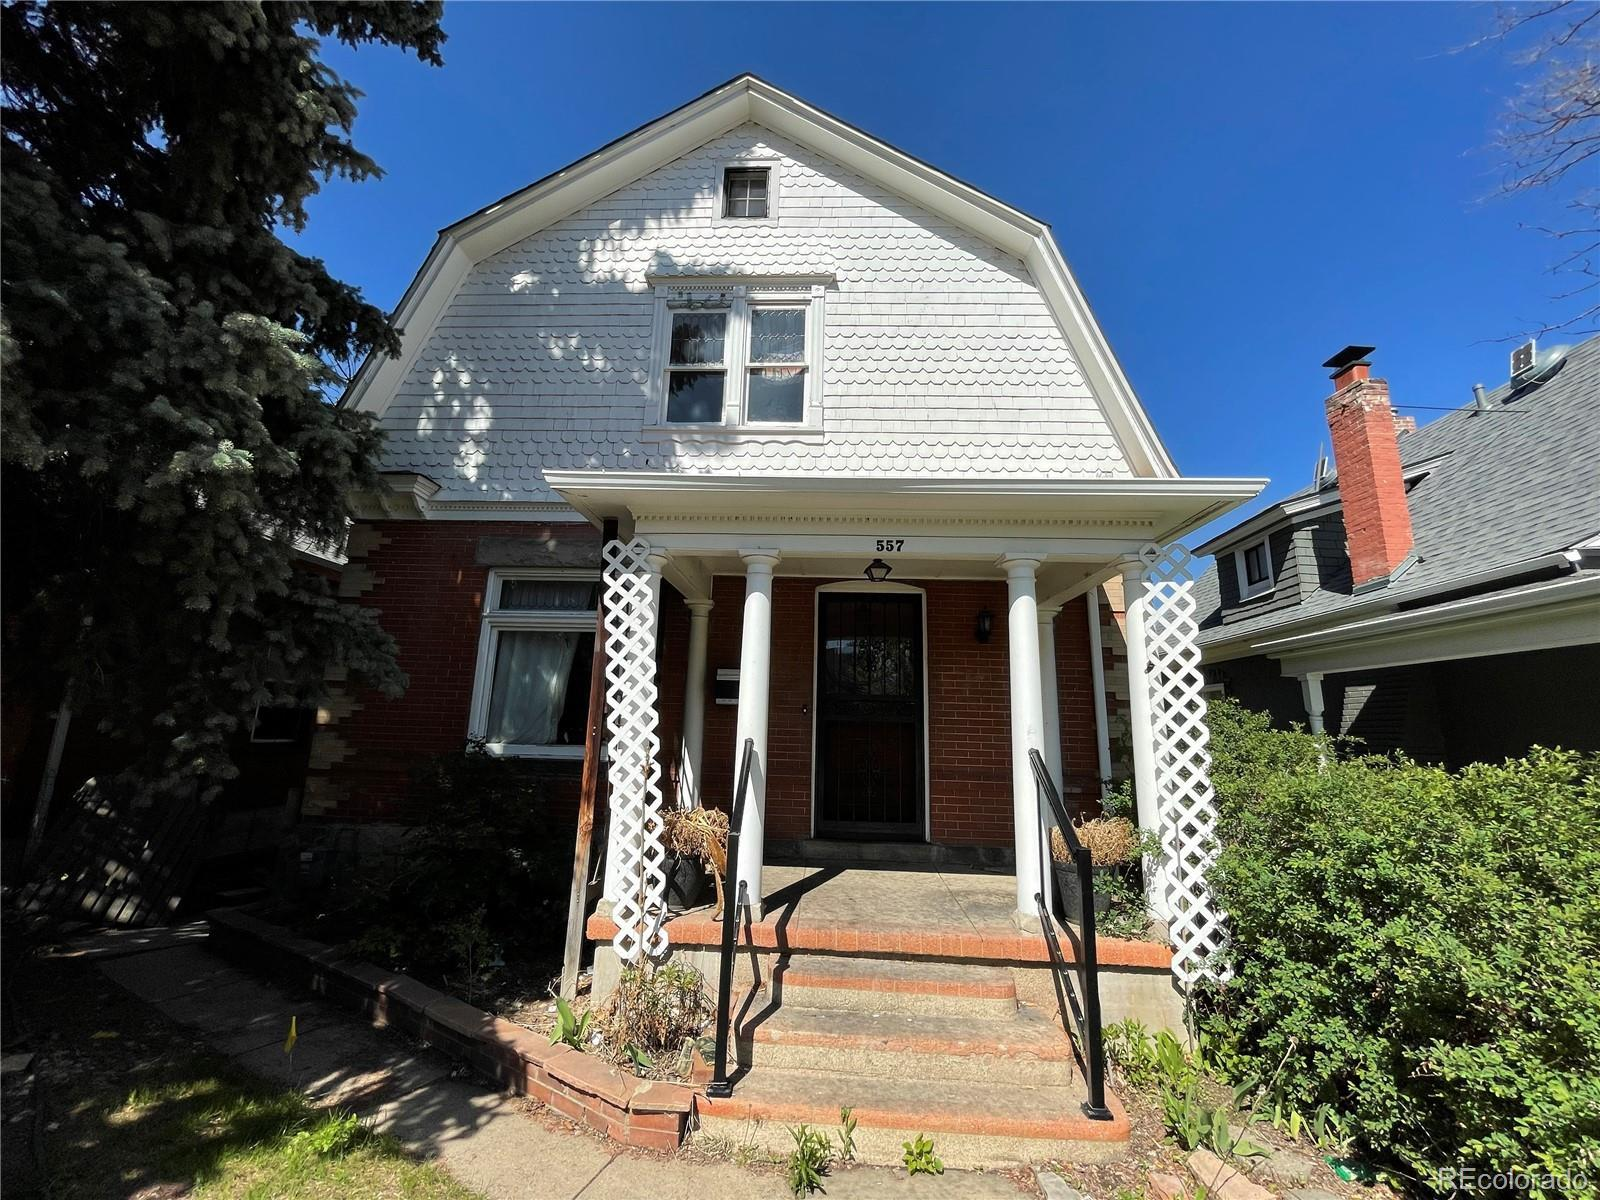 557 S Pearl Street, Denver, CO 80209 - MLS#: 3559597